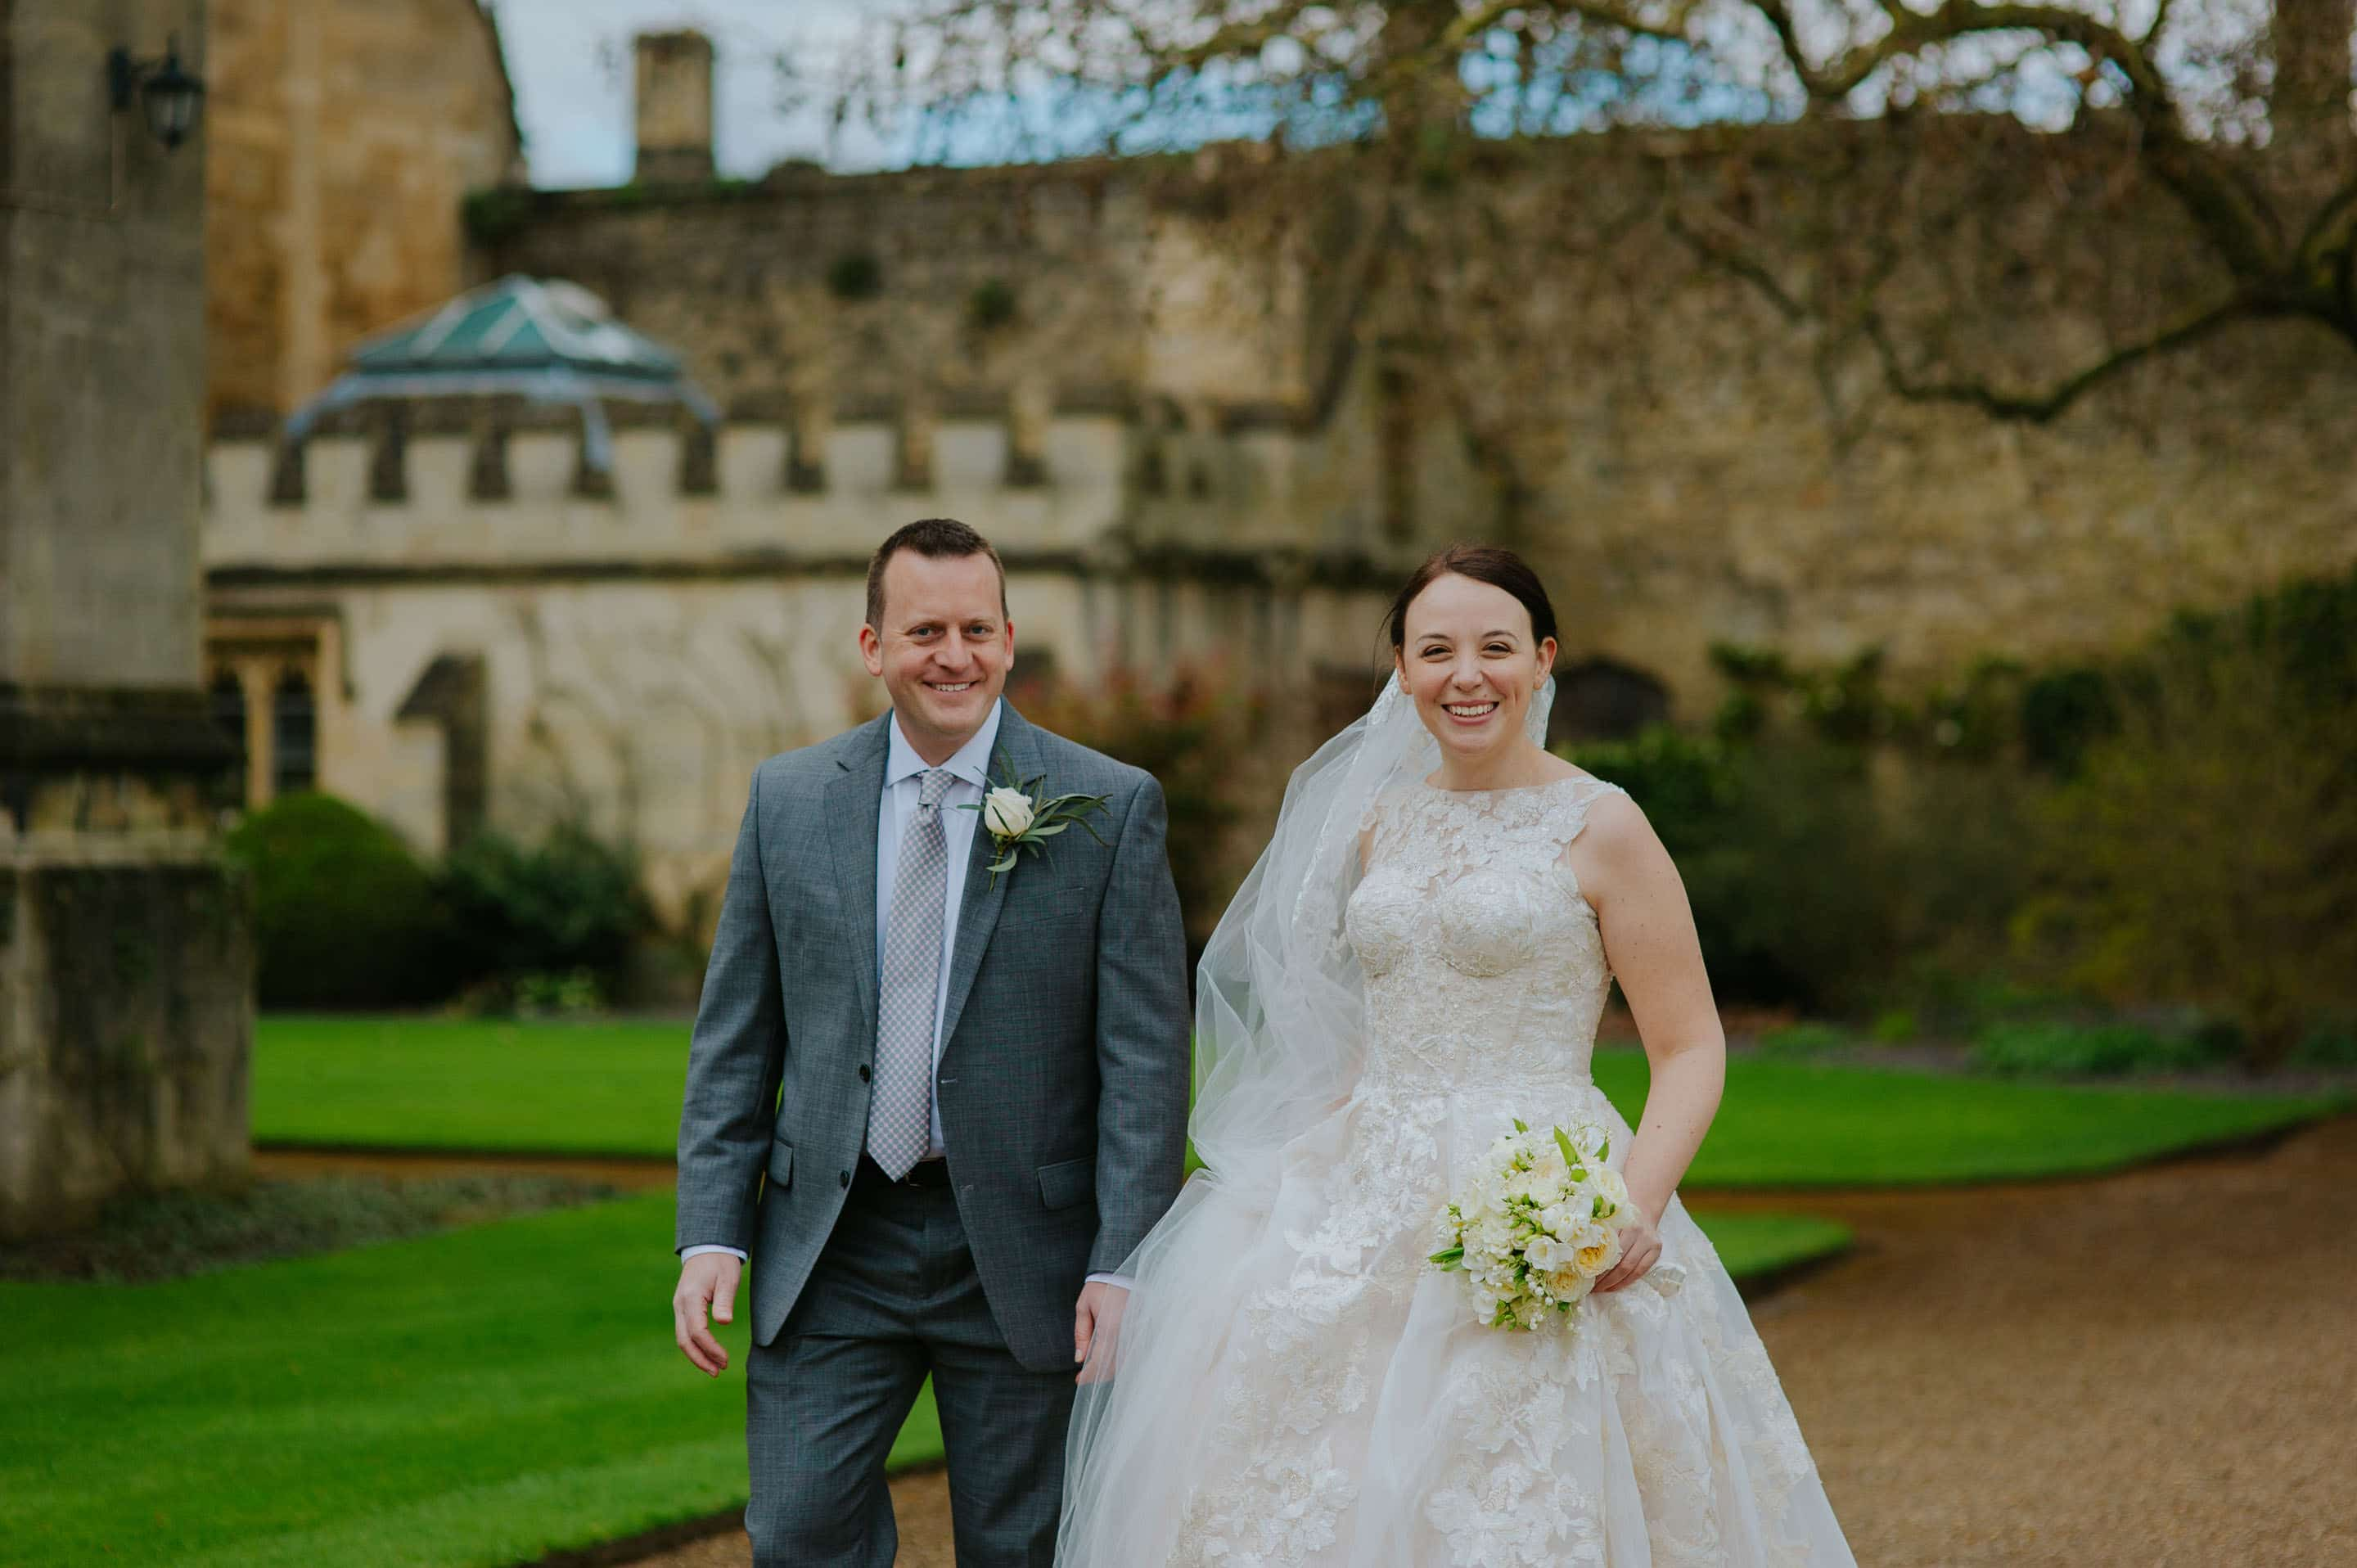 Tommie + Virginia | Wedding at Magdalen College in Oxford 5